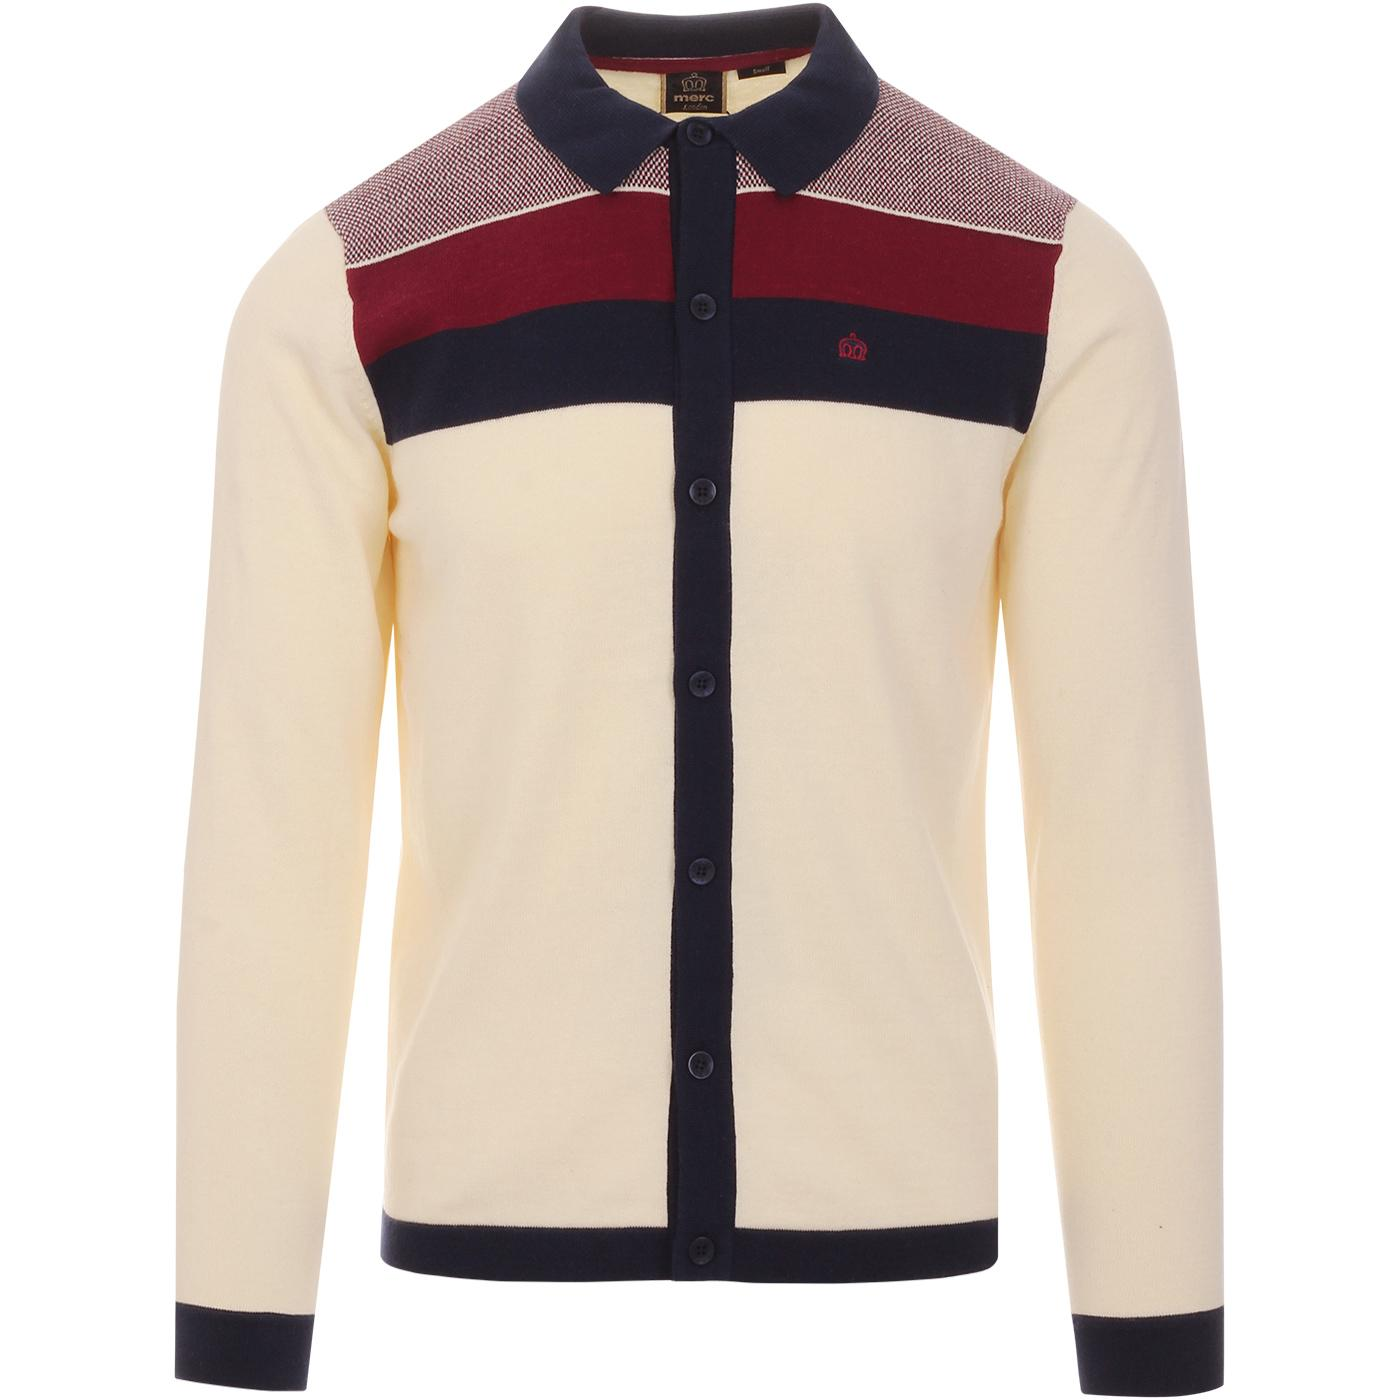 Keble MERC Retro Mod Block Panel Polo Cardigan (C)